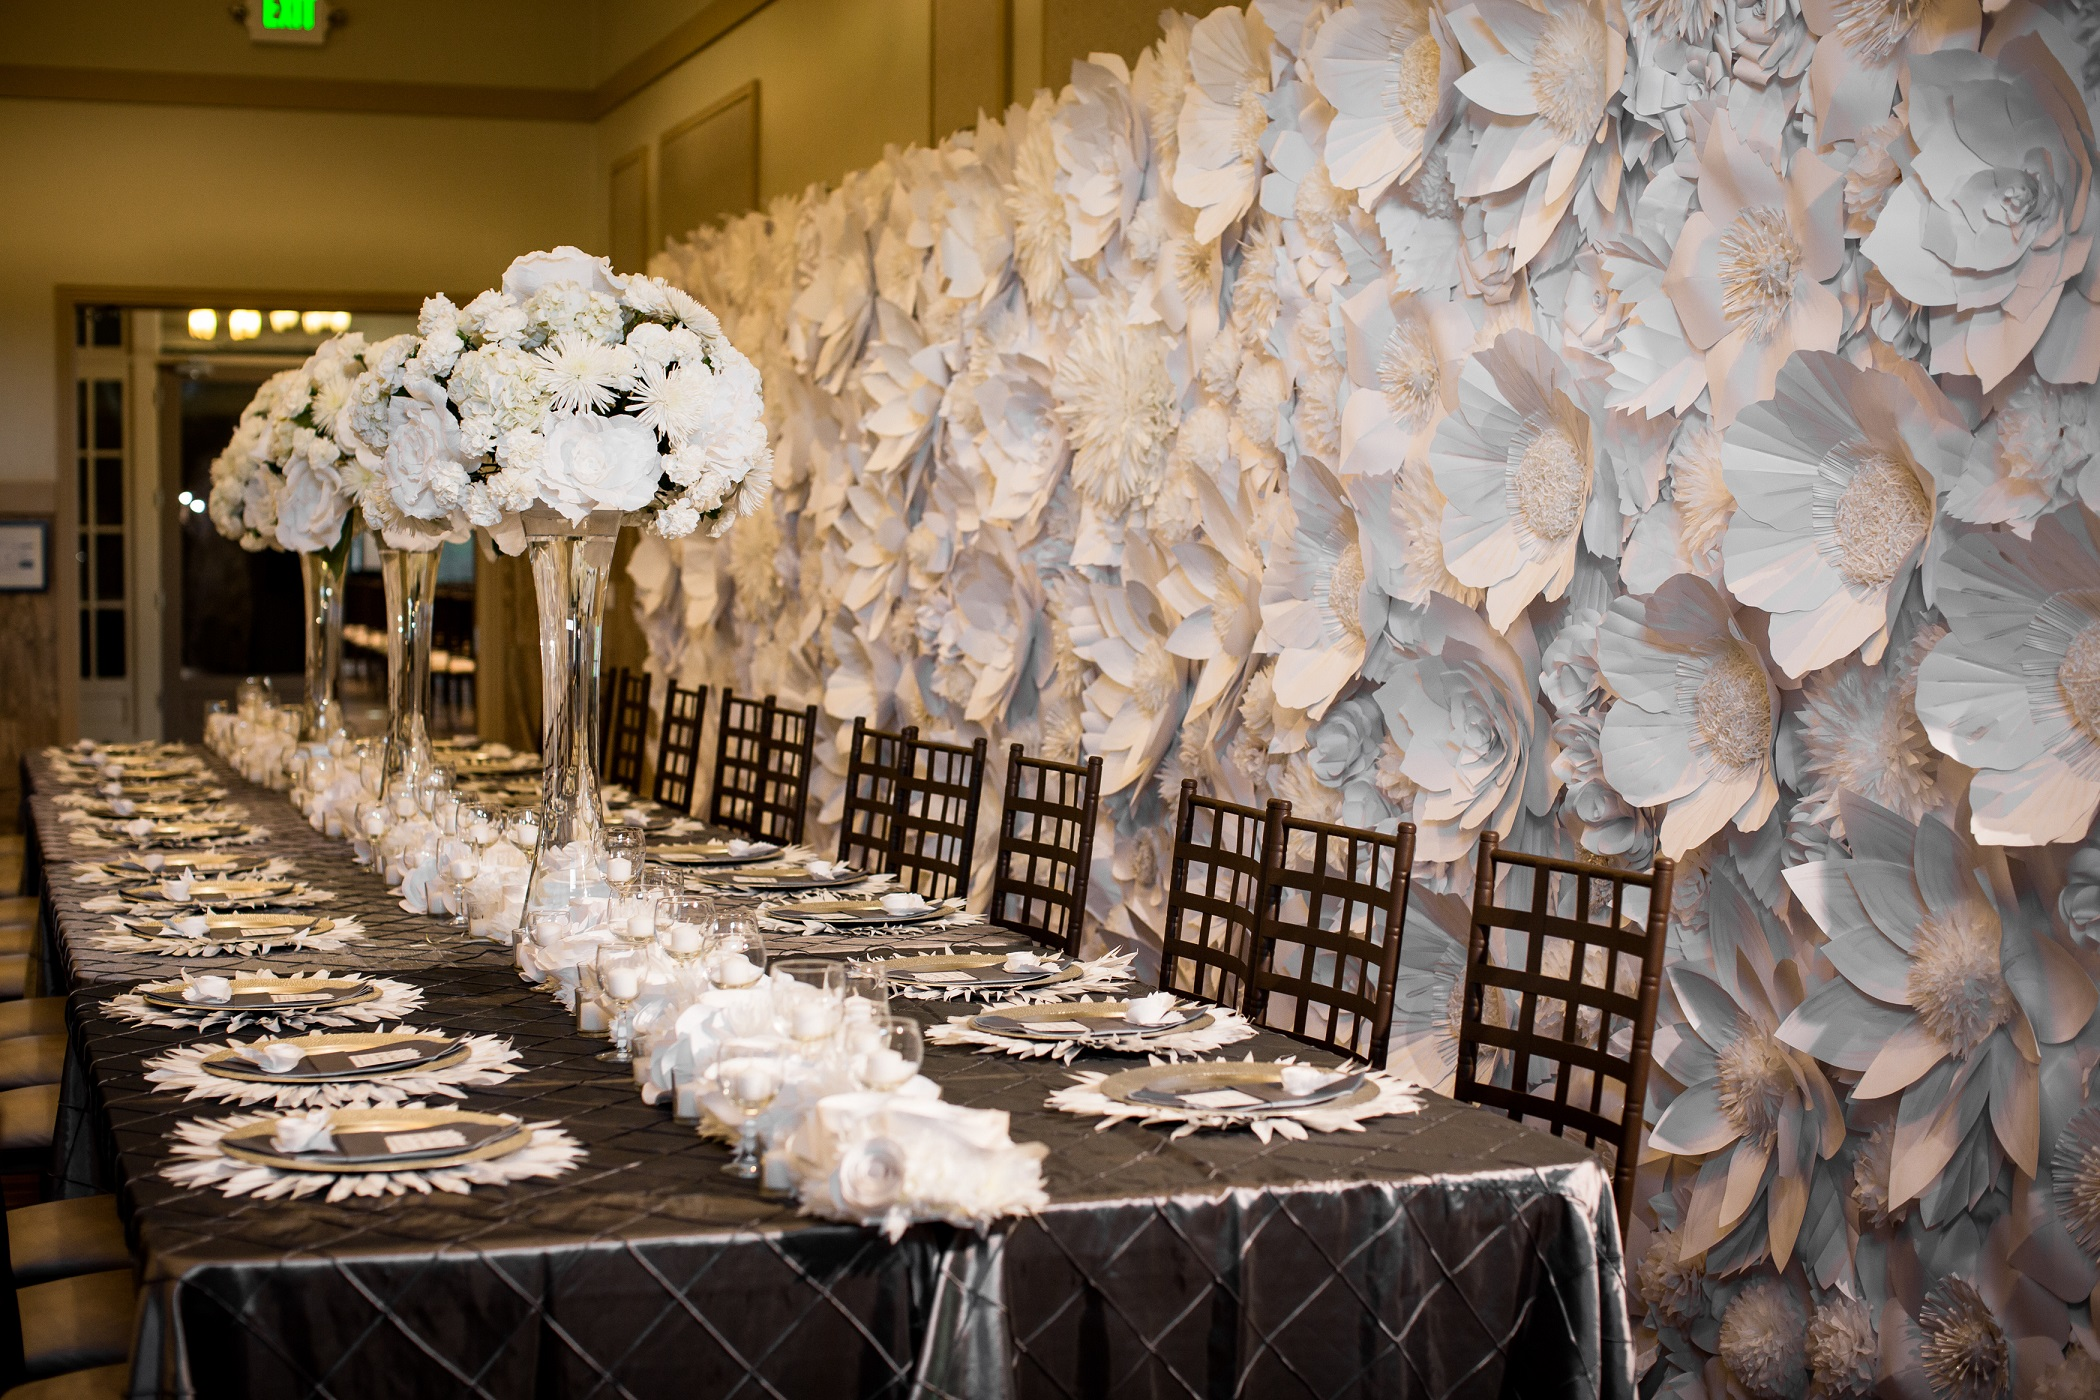 Head Table Paper Flowers Large White Backdrop.jpg